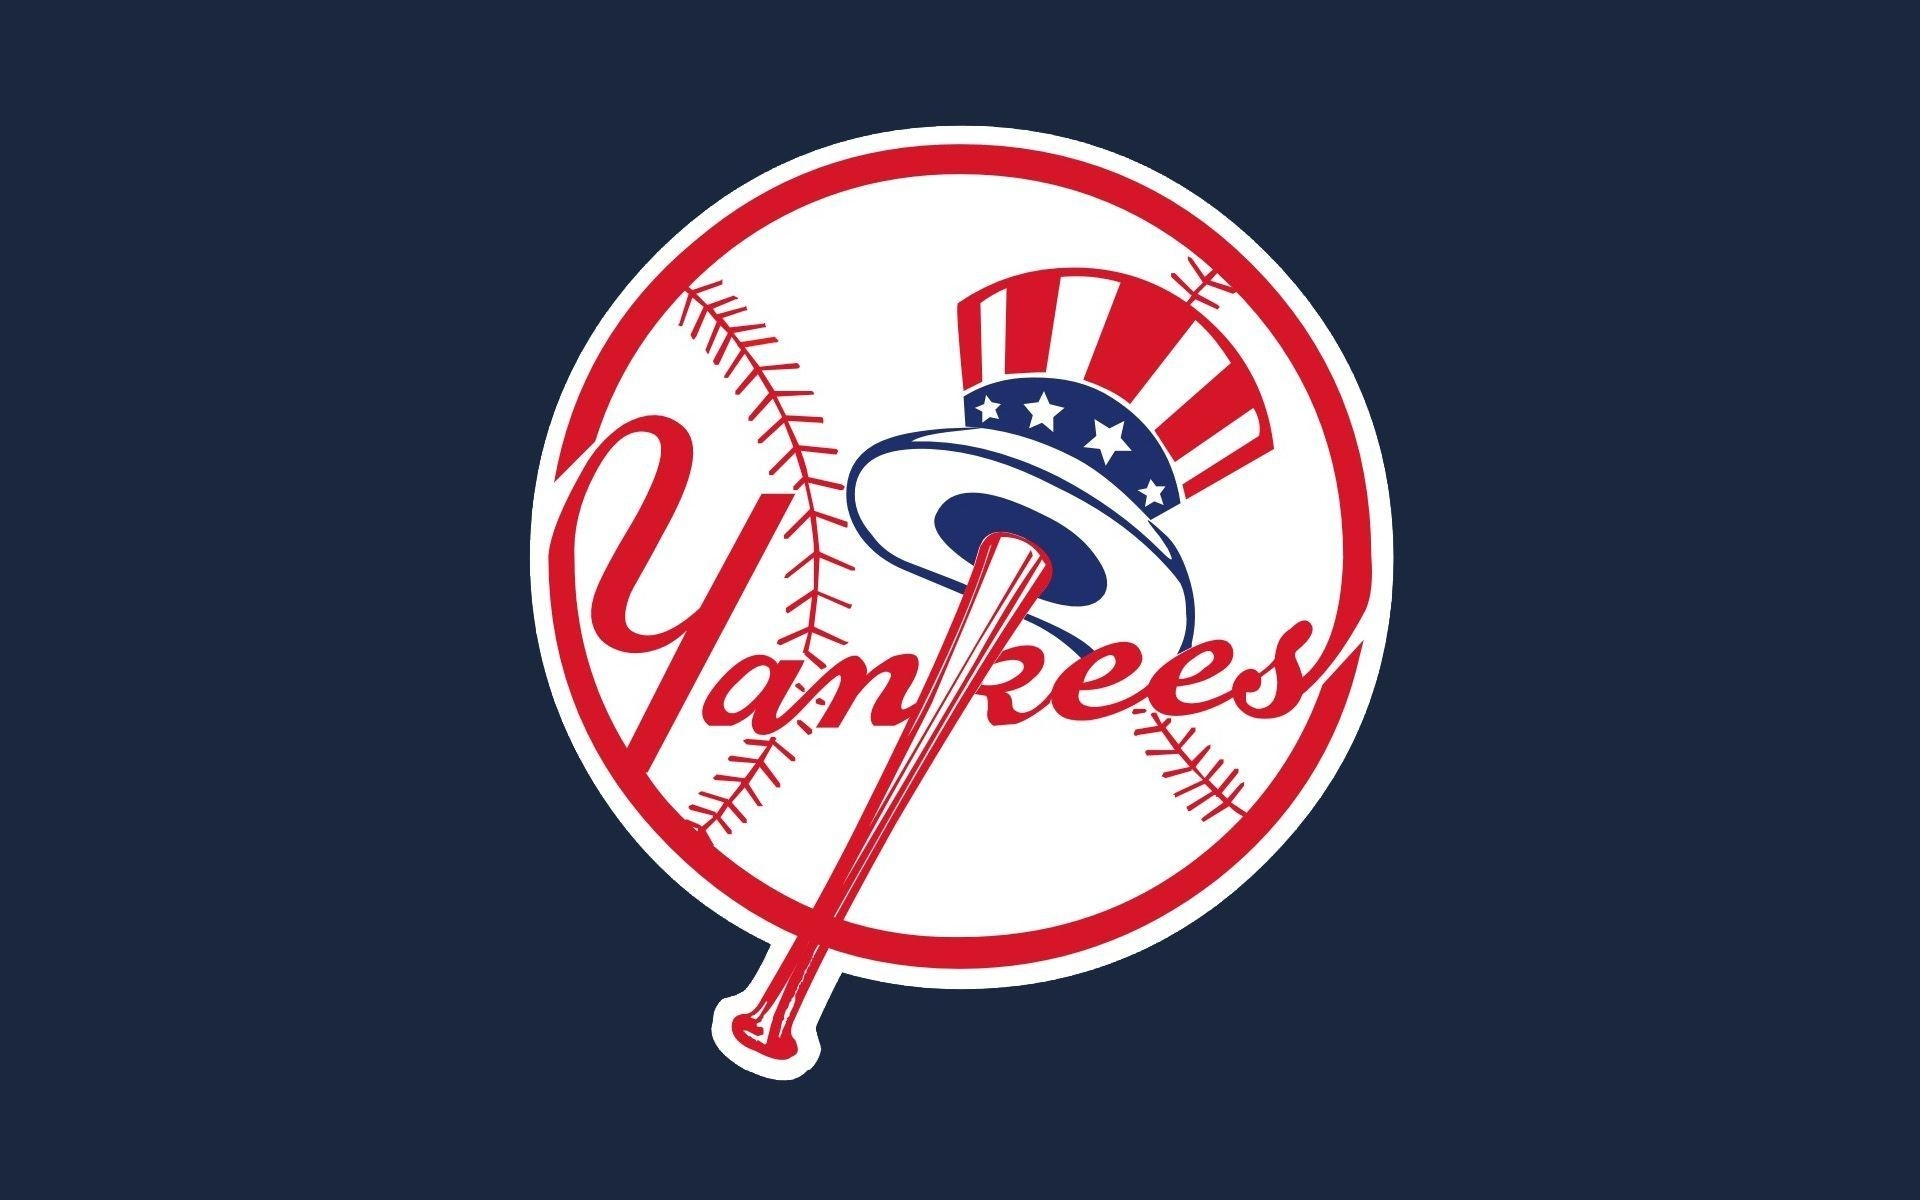 new york yankees logo wallpapers - wallpaper cave